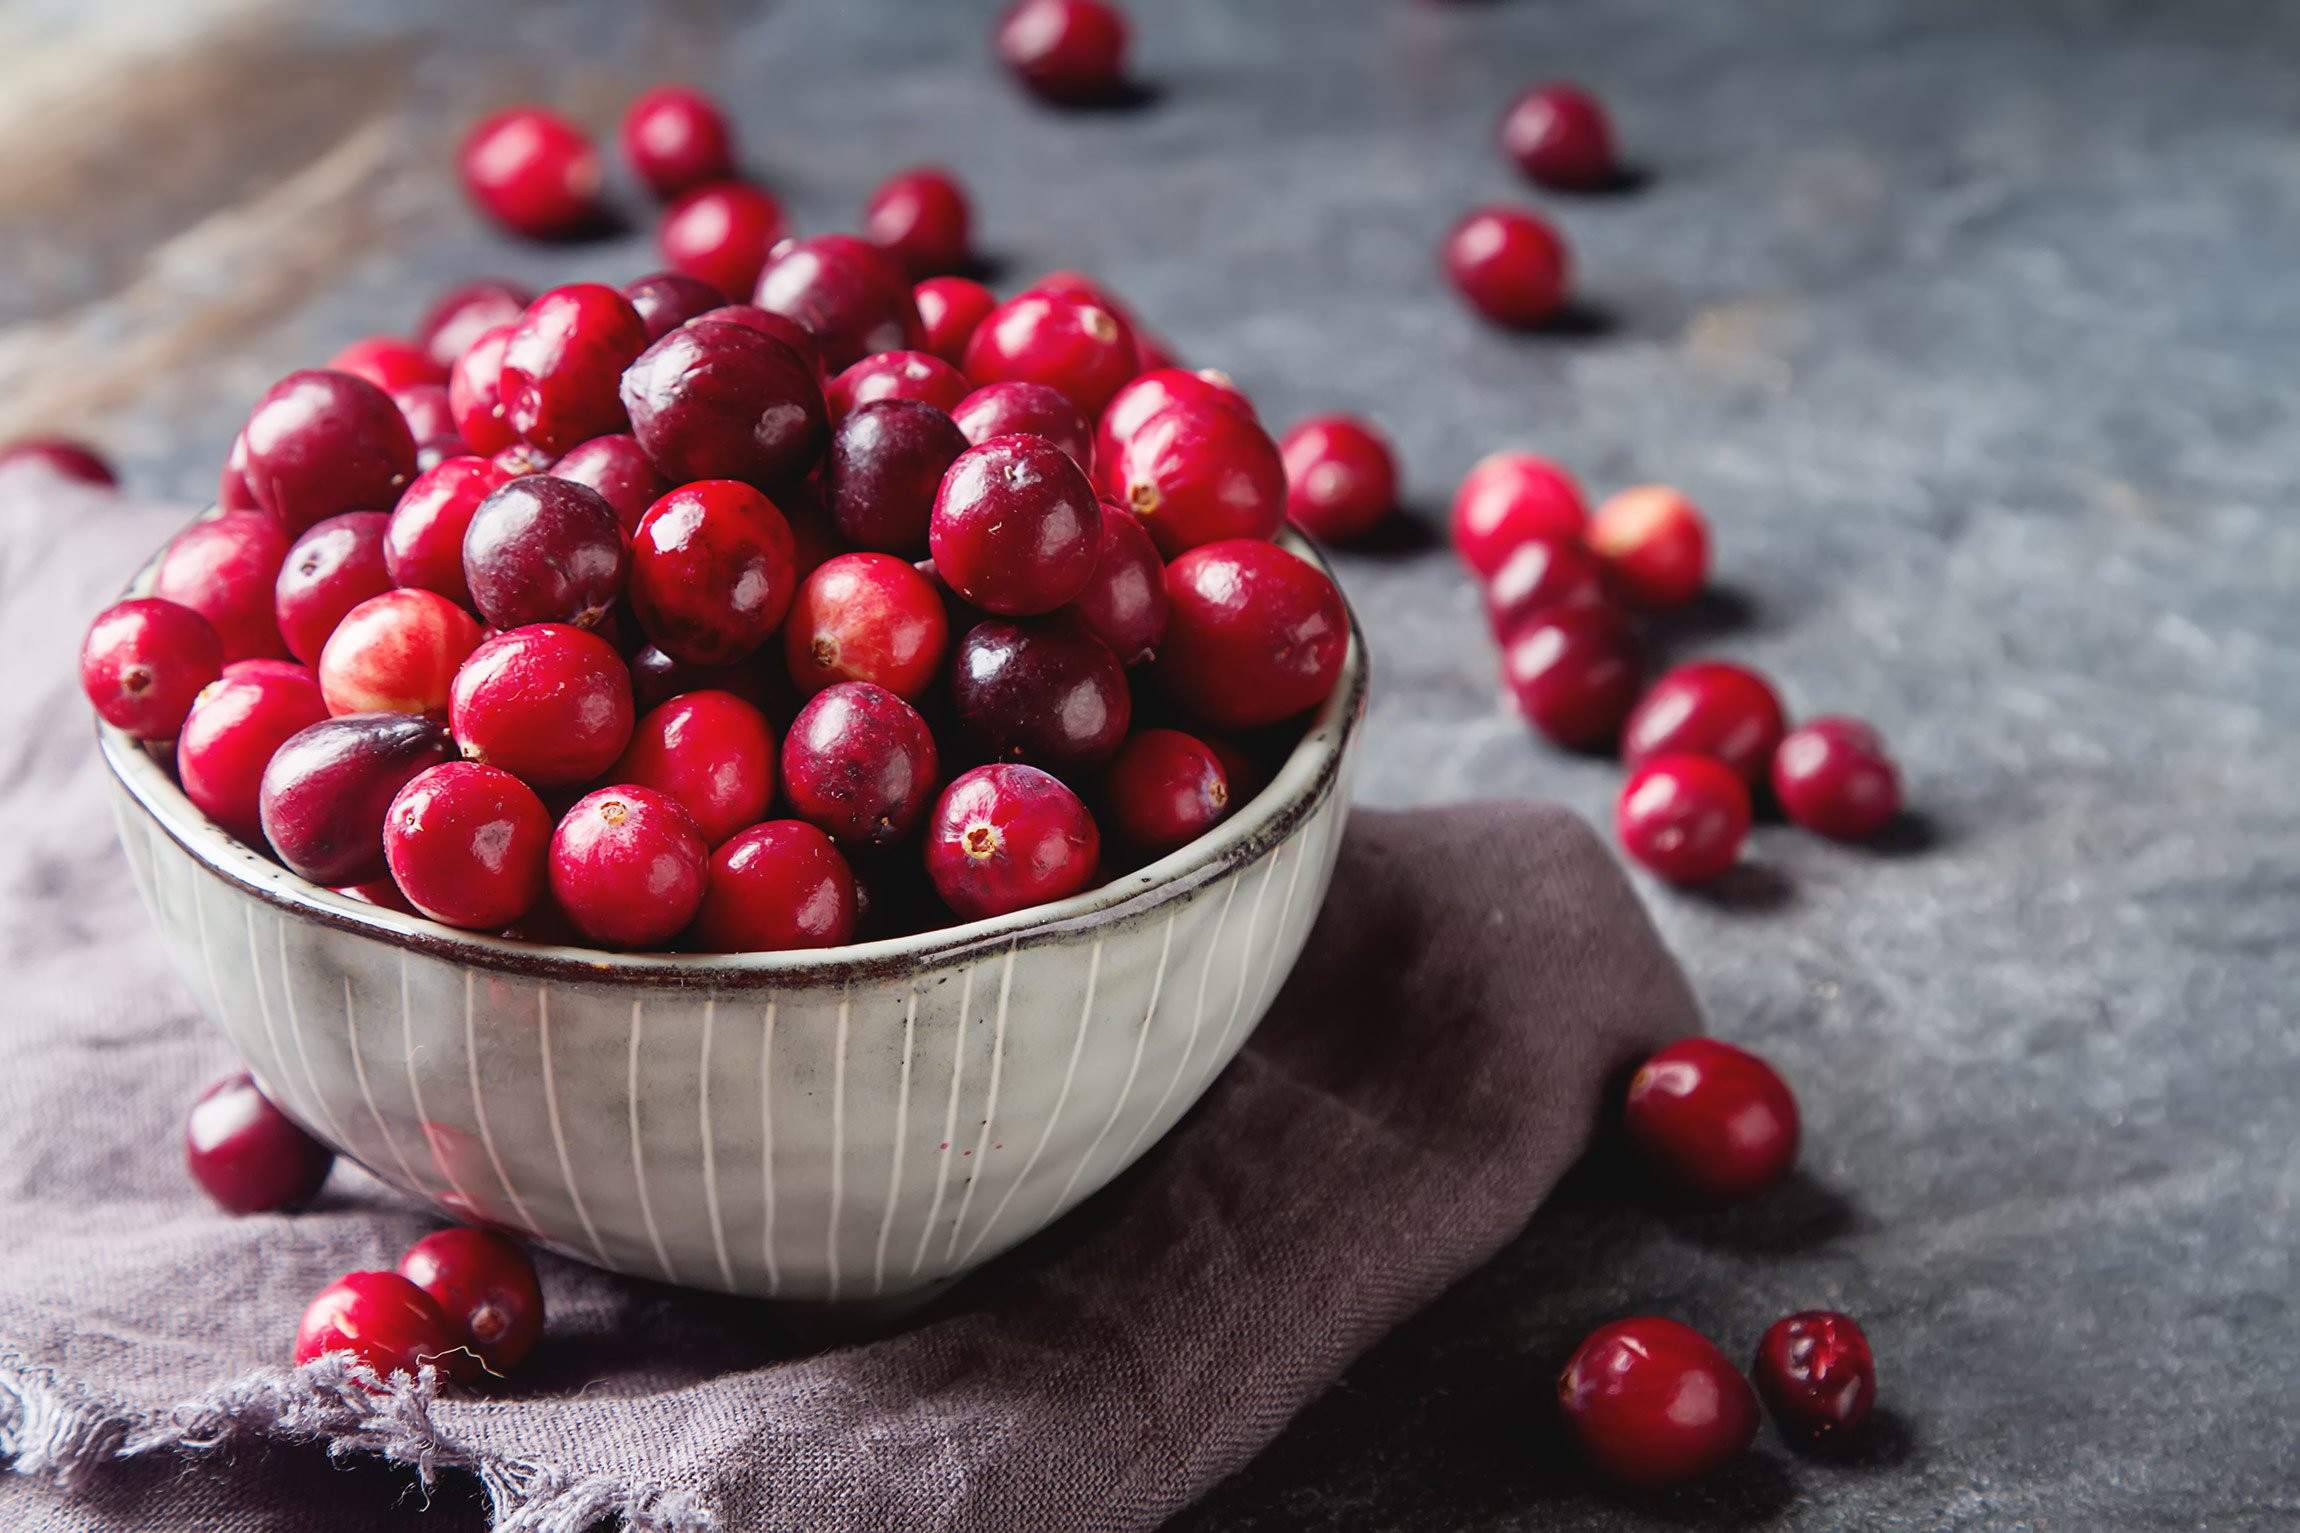 Fall fruits and vegetables: what's in season? Cranberries